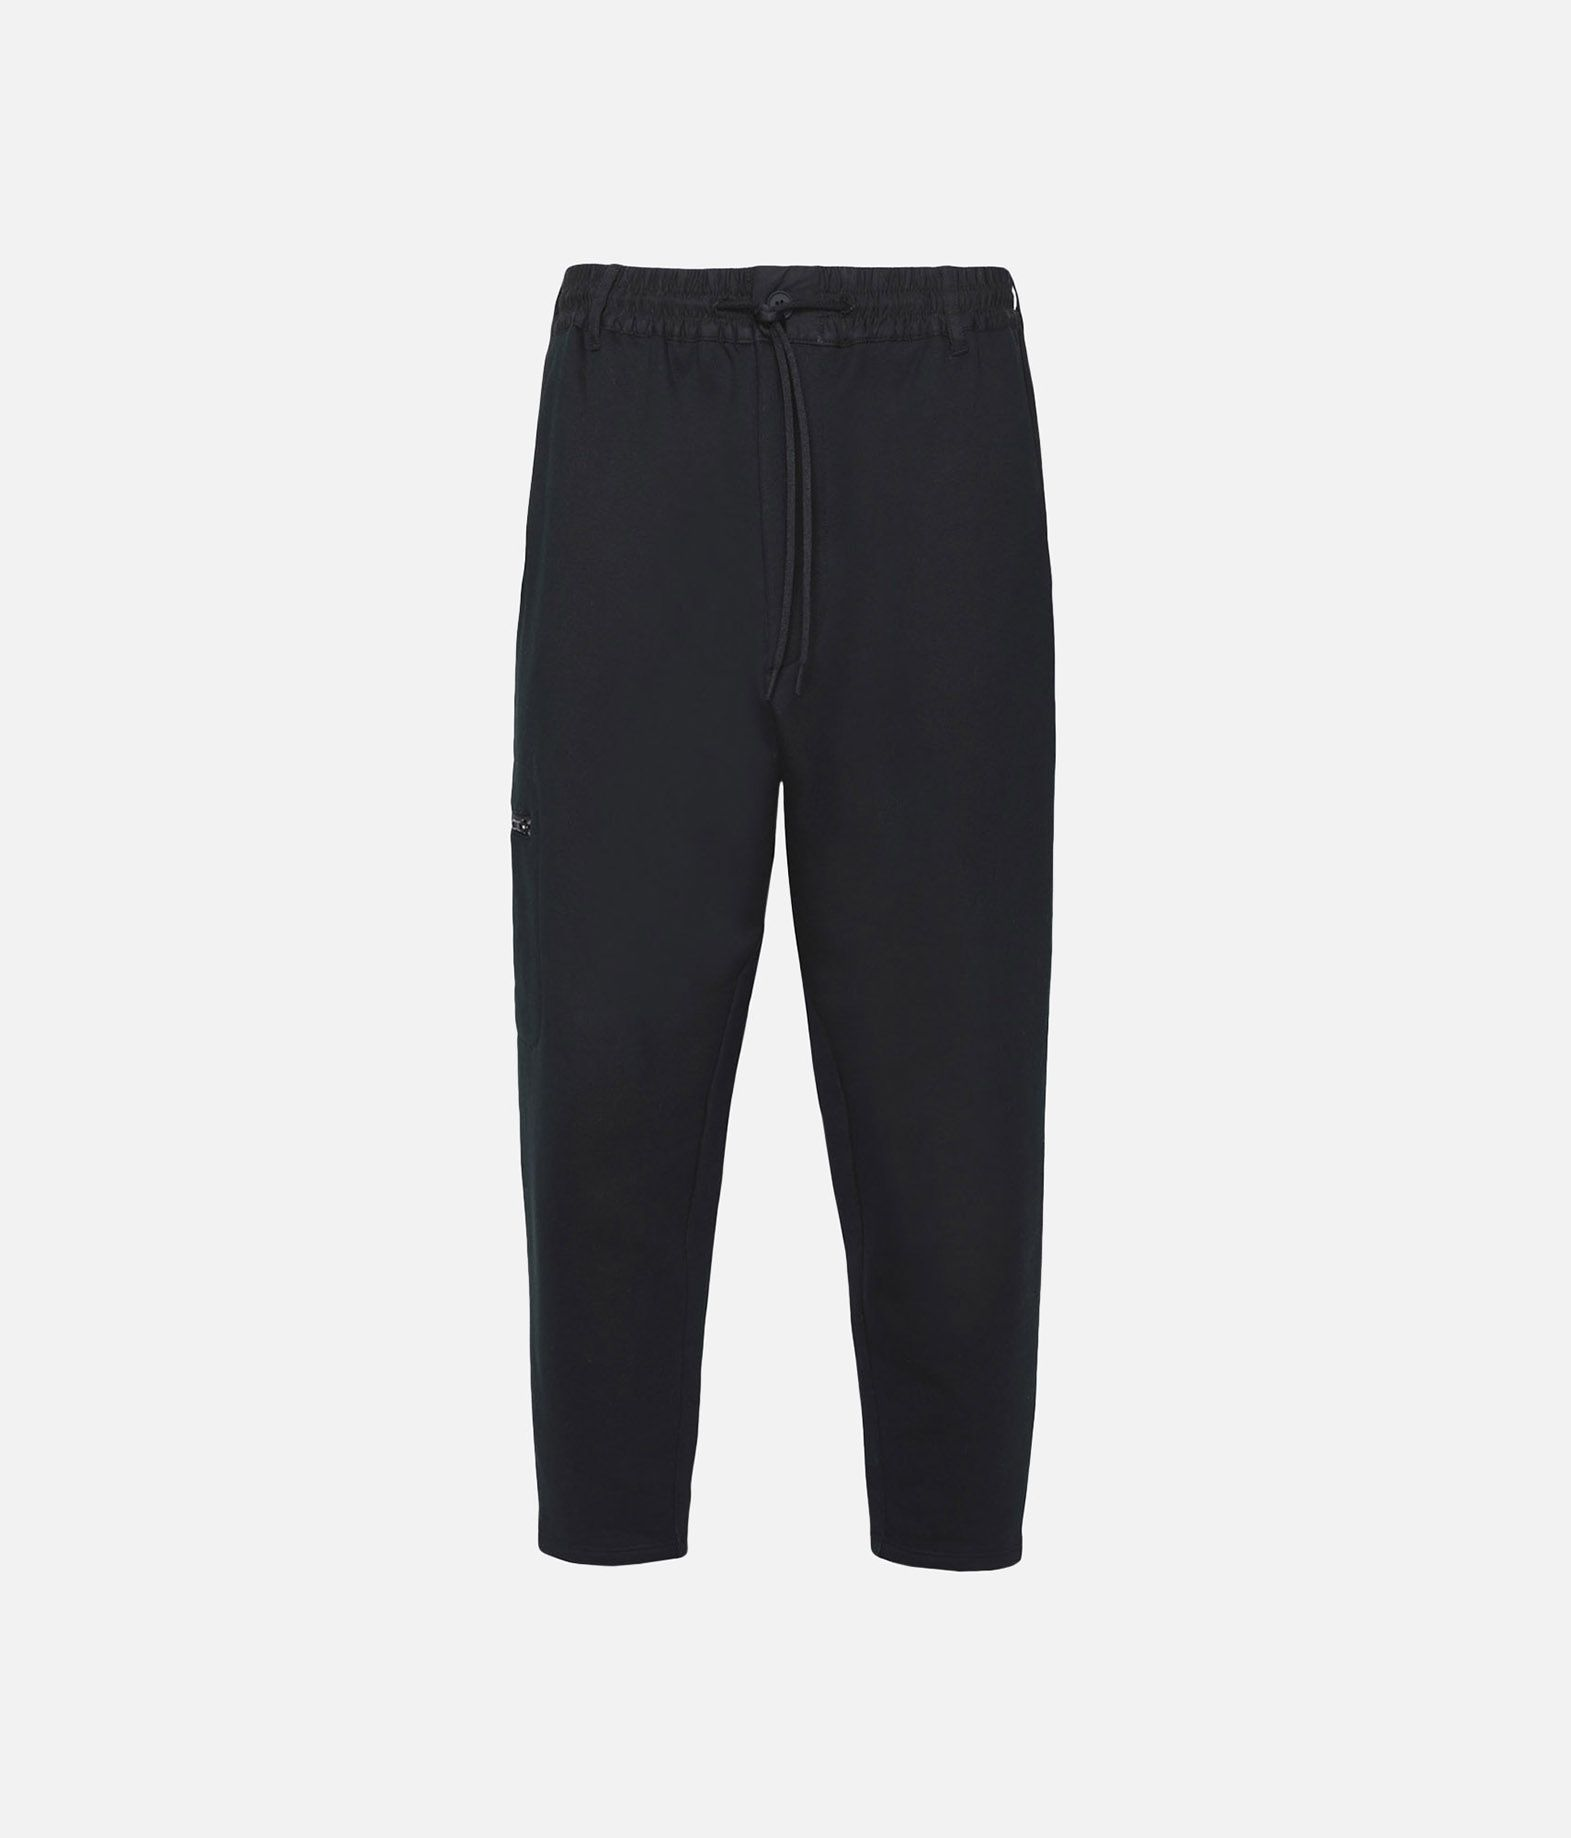 Y-3 Y-3 Binding Cargo Pants Sweatpants Man f